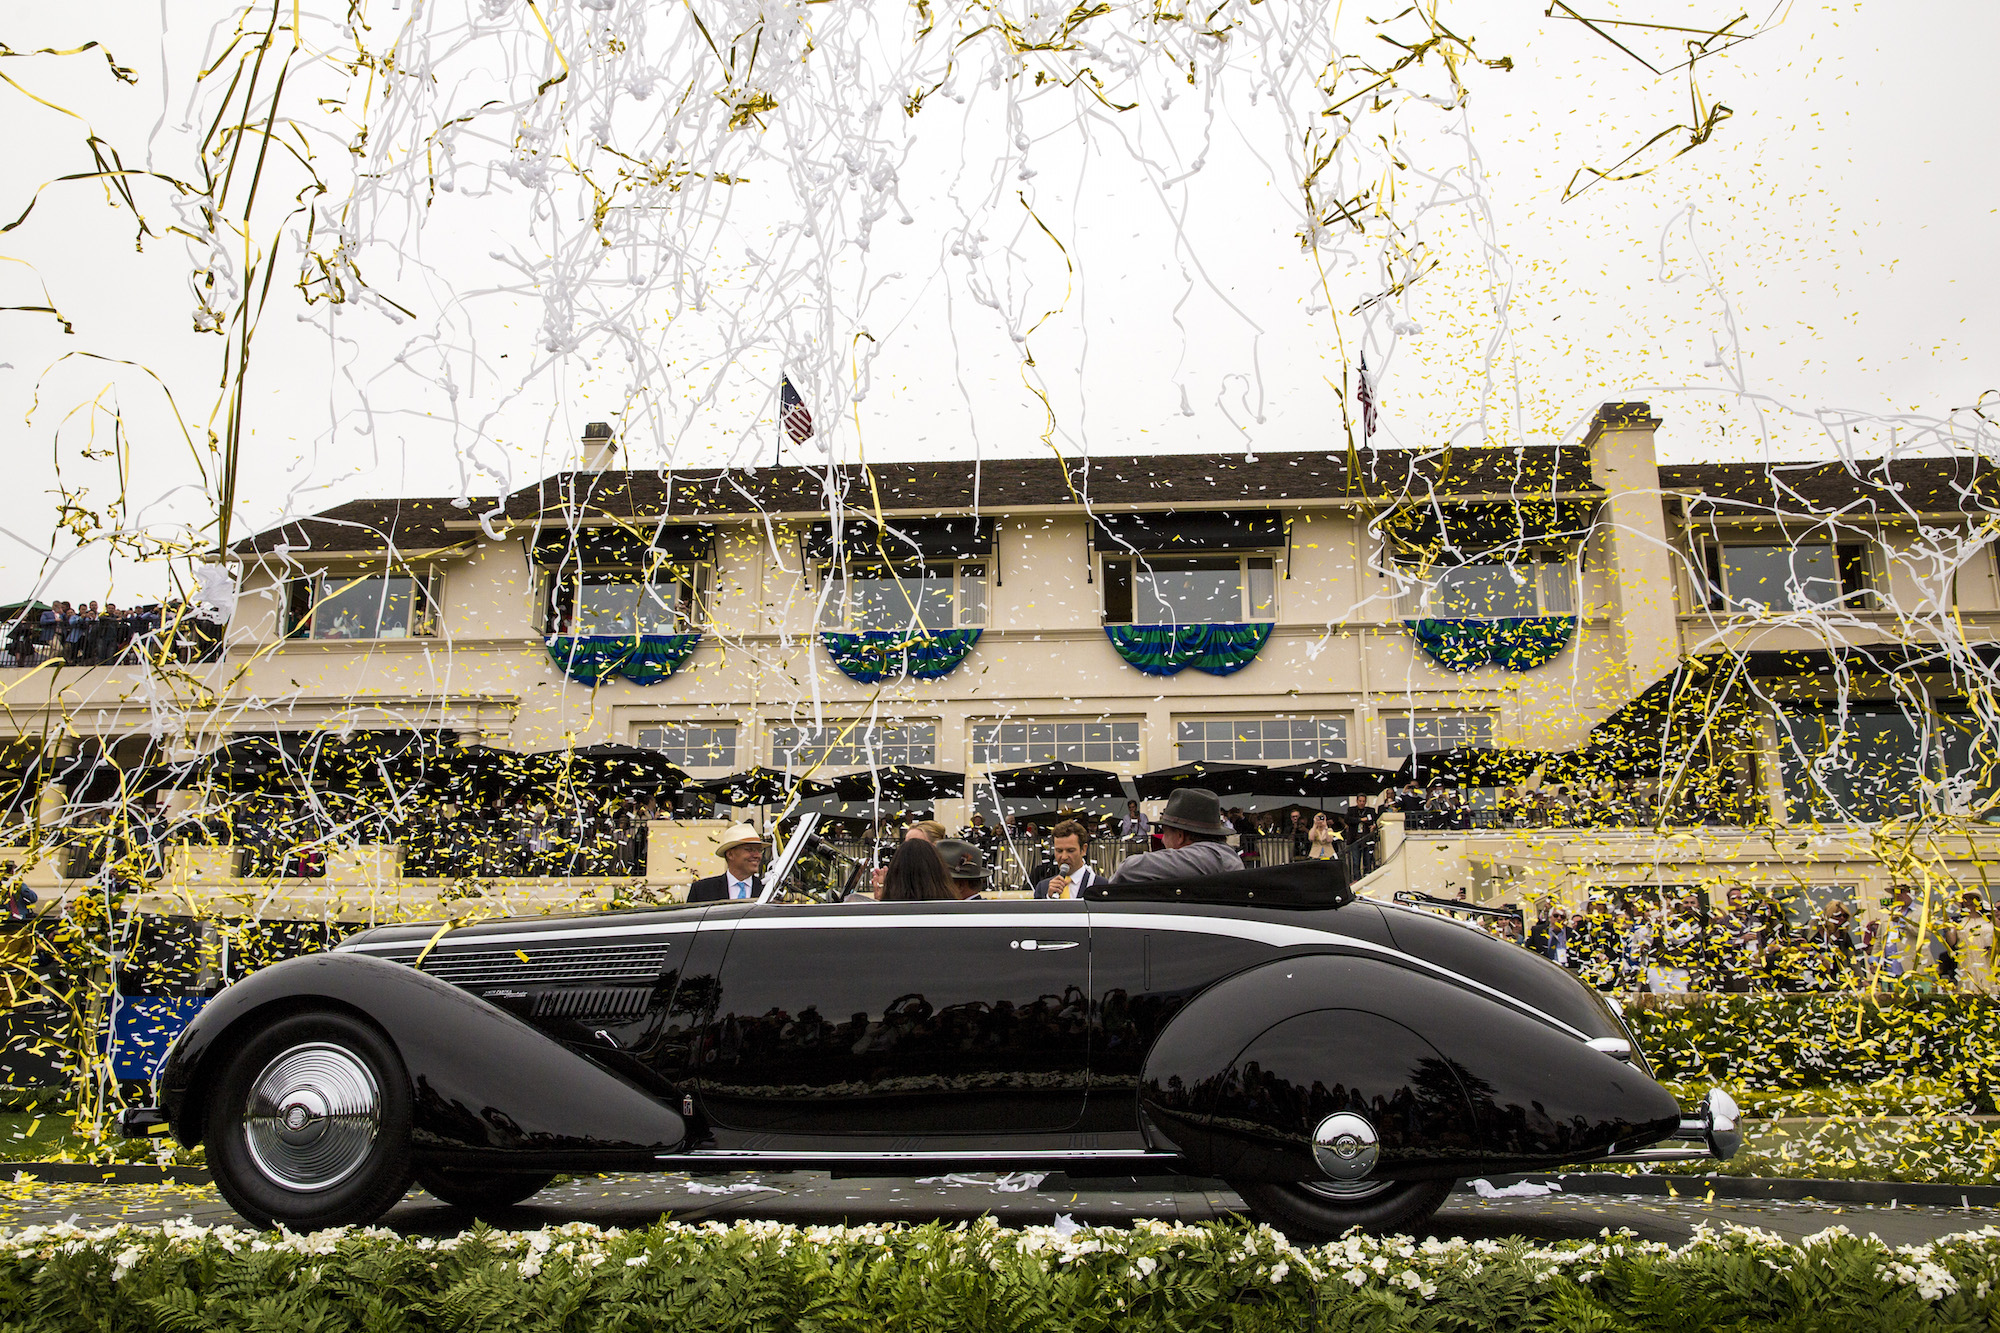 1936 Lancia Astura Pinin Farina Cabriolet Best of Show Award at Pebble Beach Concours d'Elegance 2016 (Photo: Rolex/Tom O'Neal)